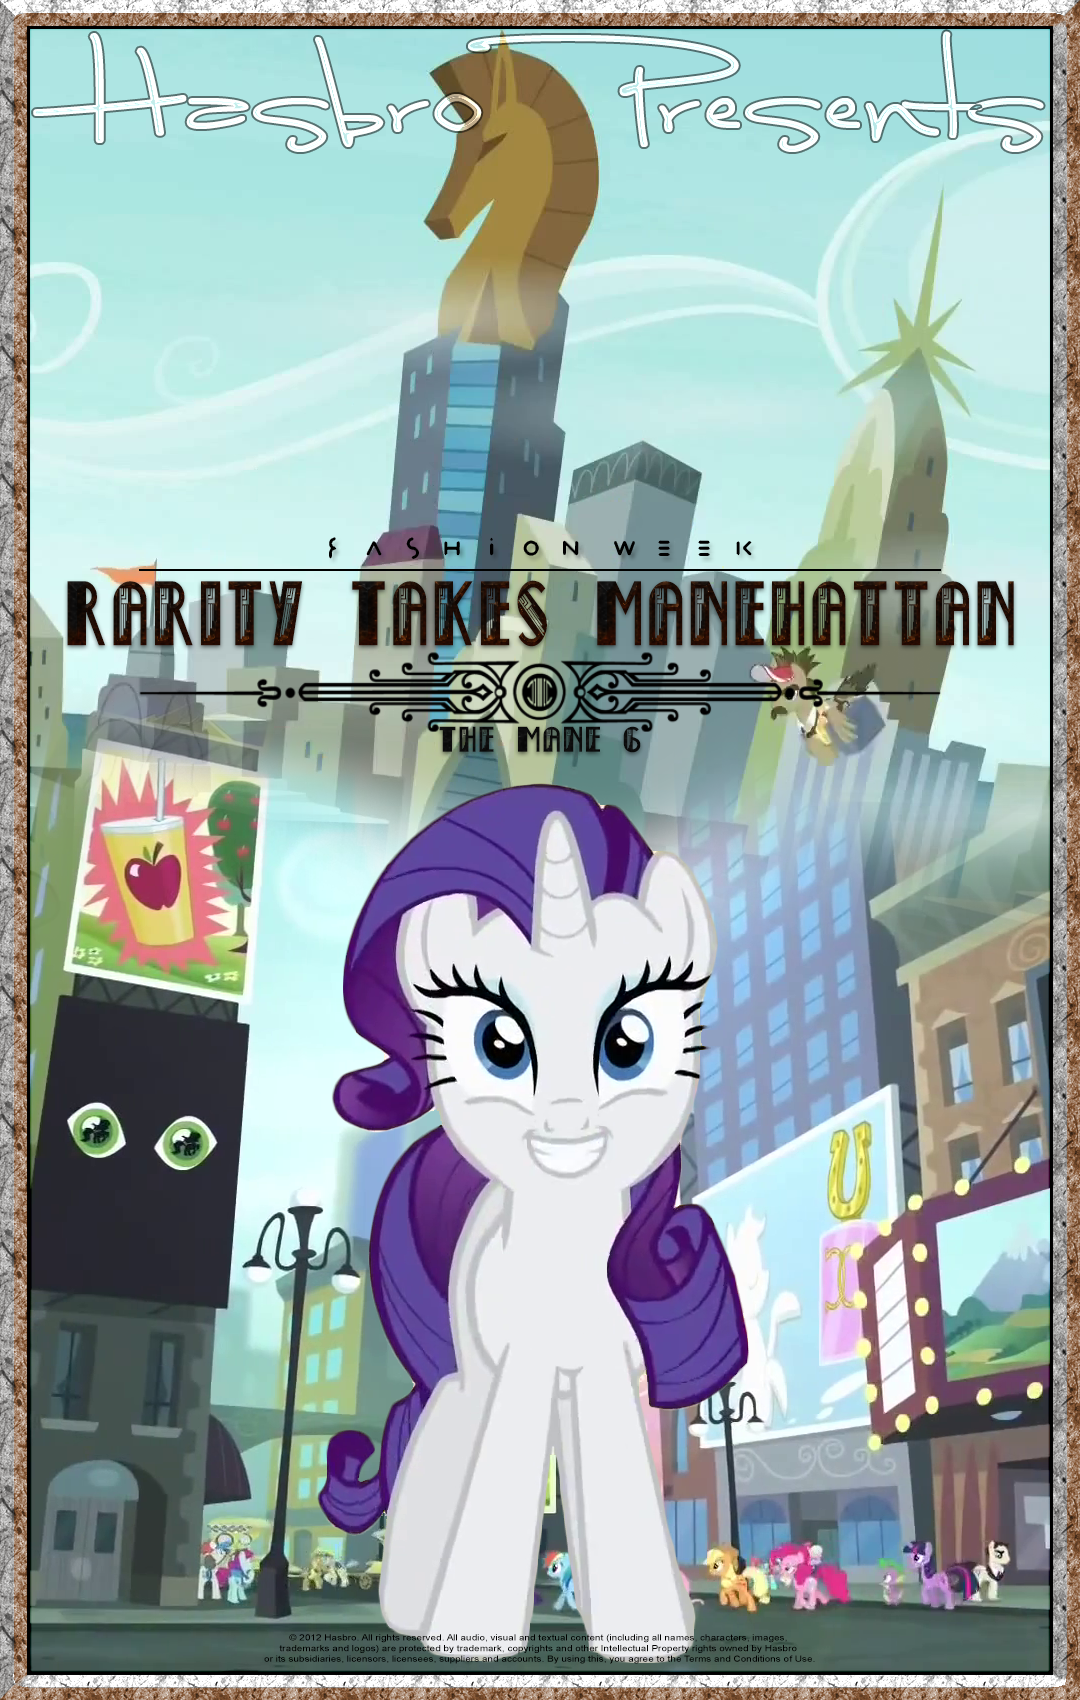 mlp___rarity_takes_manehattan___movie_po